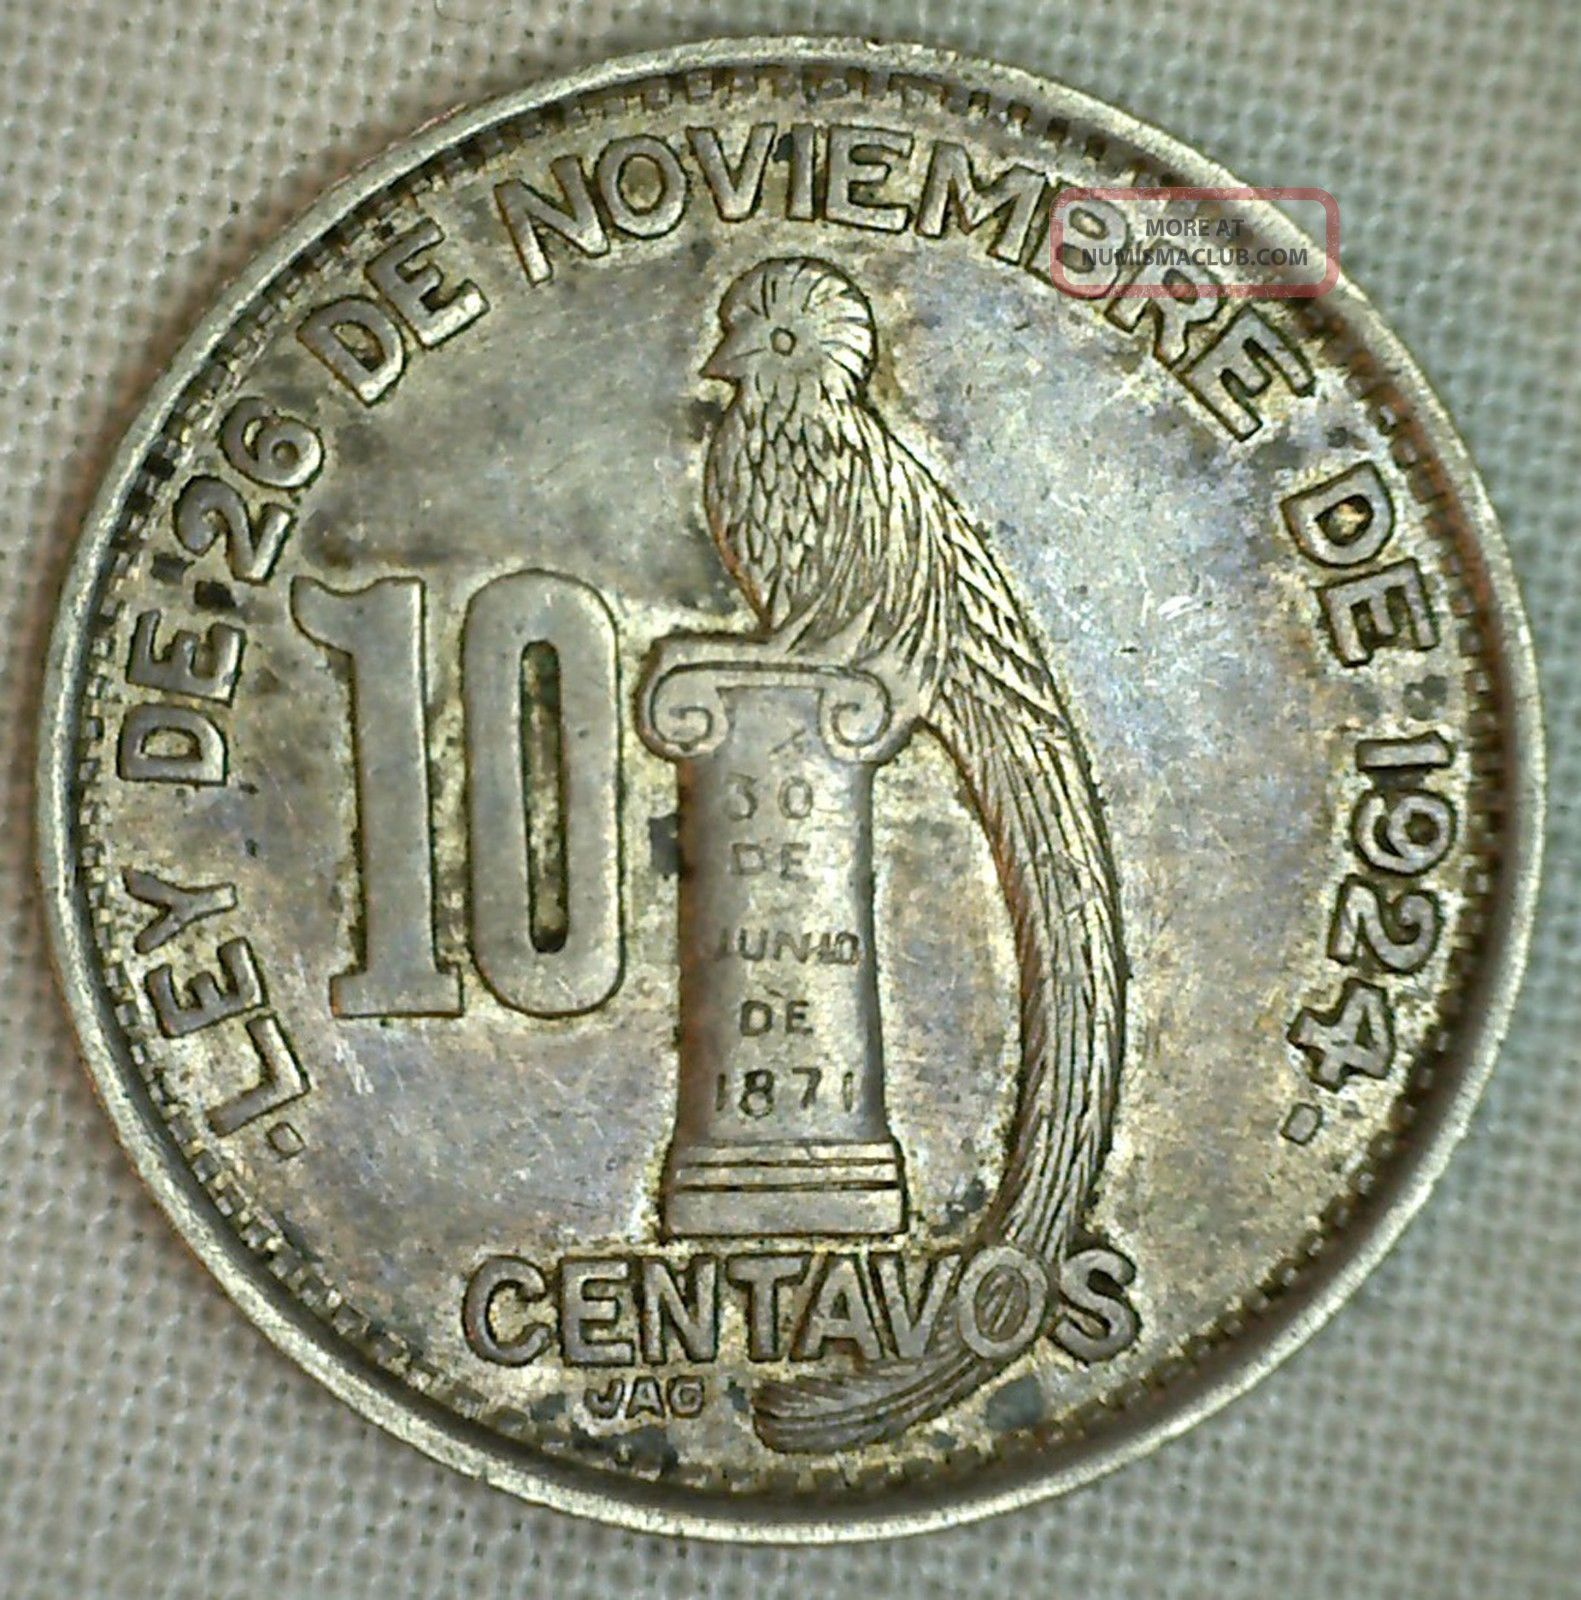 1948 Guatemala Silver 10 Centavos Au Almost Uncirculated 10 Cents Km 239.  1 North & Central America photo